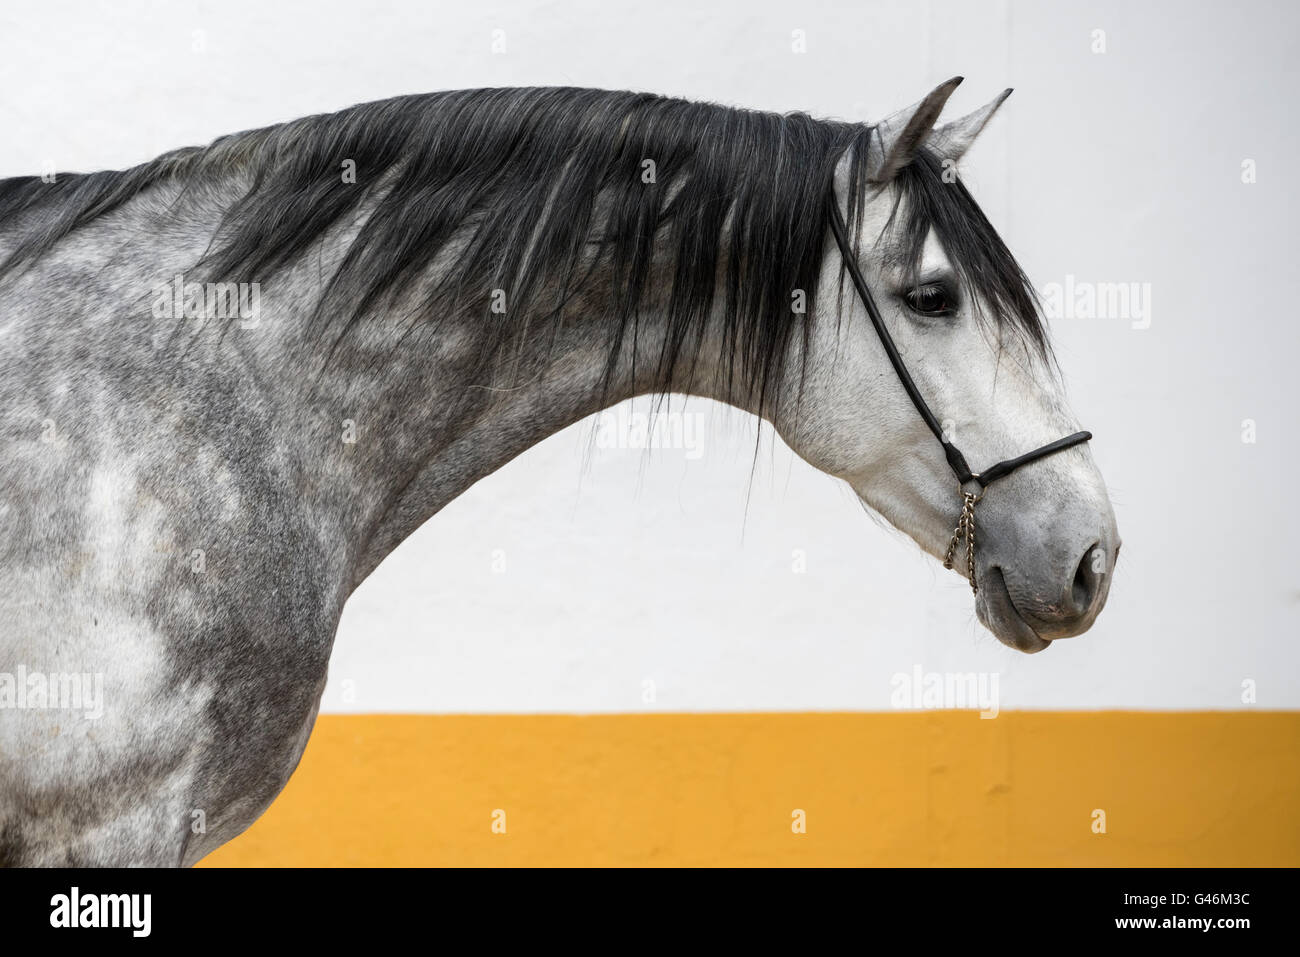 Beautiful PRE stallion portrait - Stock Image